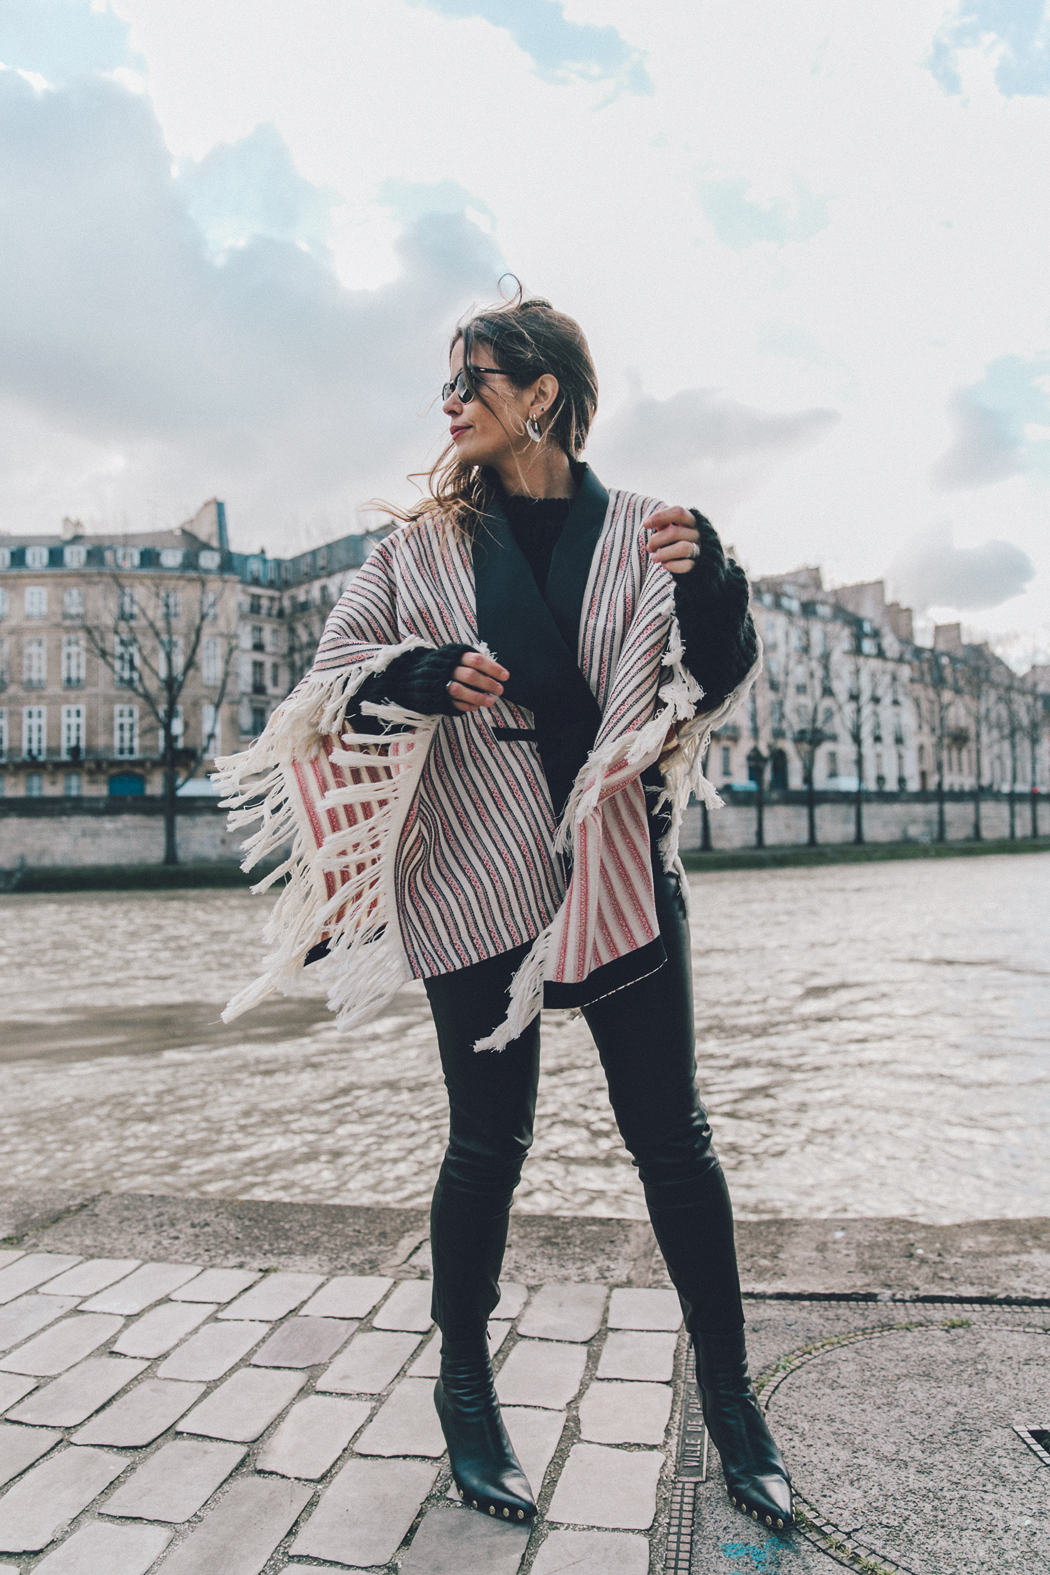 Collage_Vintage_Outfit-Maje_Exclusive-Poncho-Striped-Black-Celine_Boots-Street_Style-PFW-25